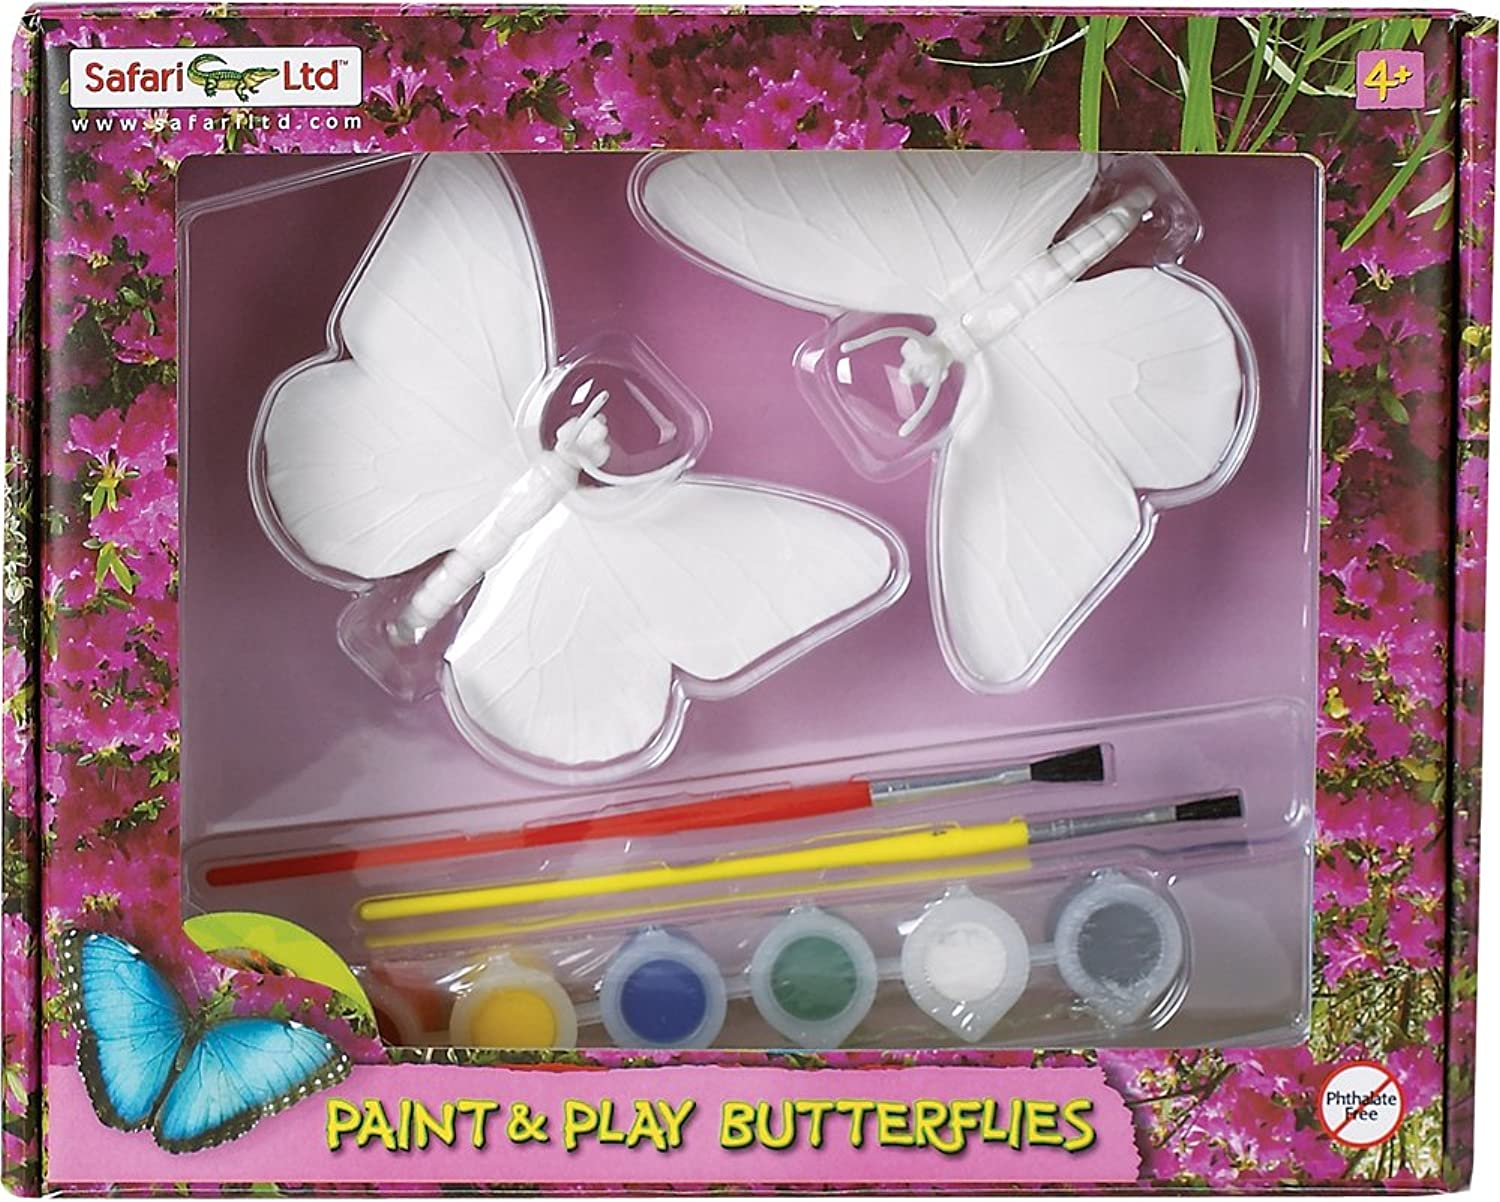 Safari LTD Butterflies Paint Paint Paint and Play 957833 - qyreq